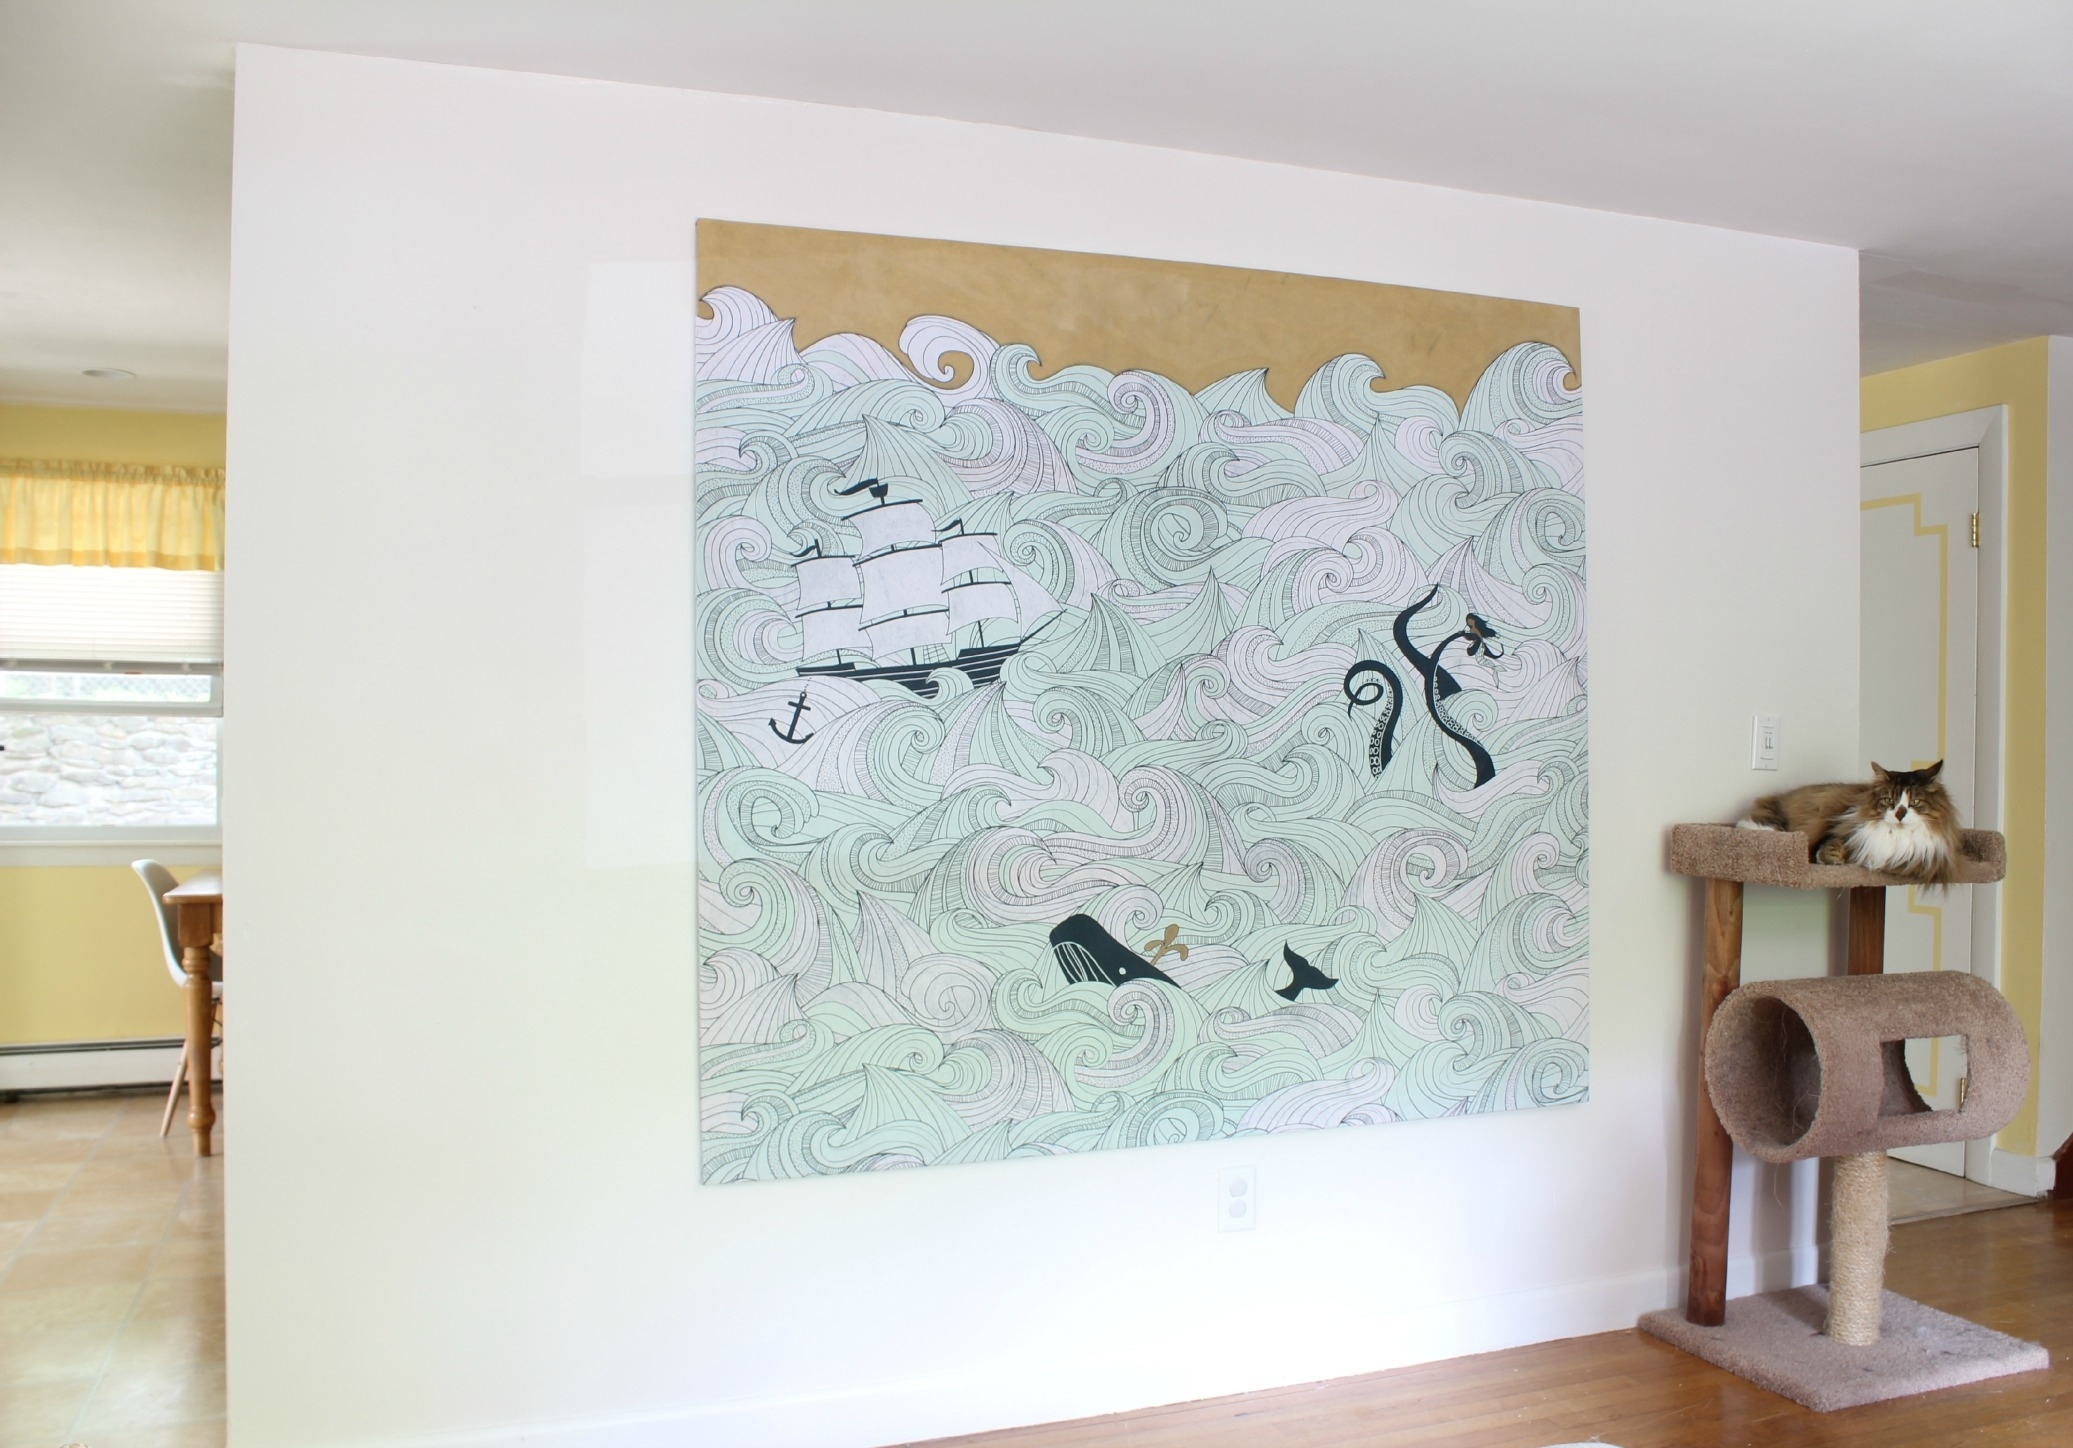 Diy Stretched Fabric Canvas (With A Shower Curtain!) | Stephanie With Regard To Most Recently Released Large Fabric Wall Art (View 6 of 15)